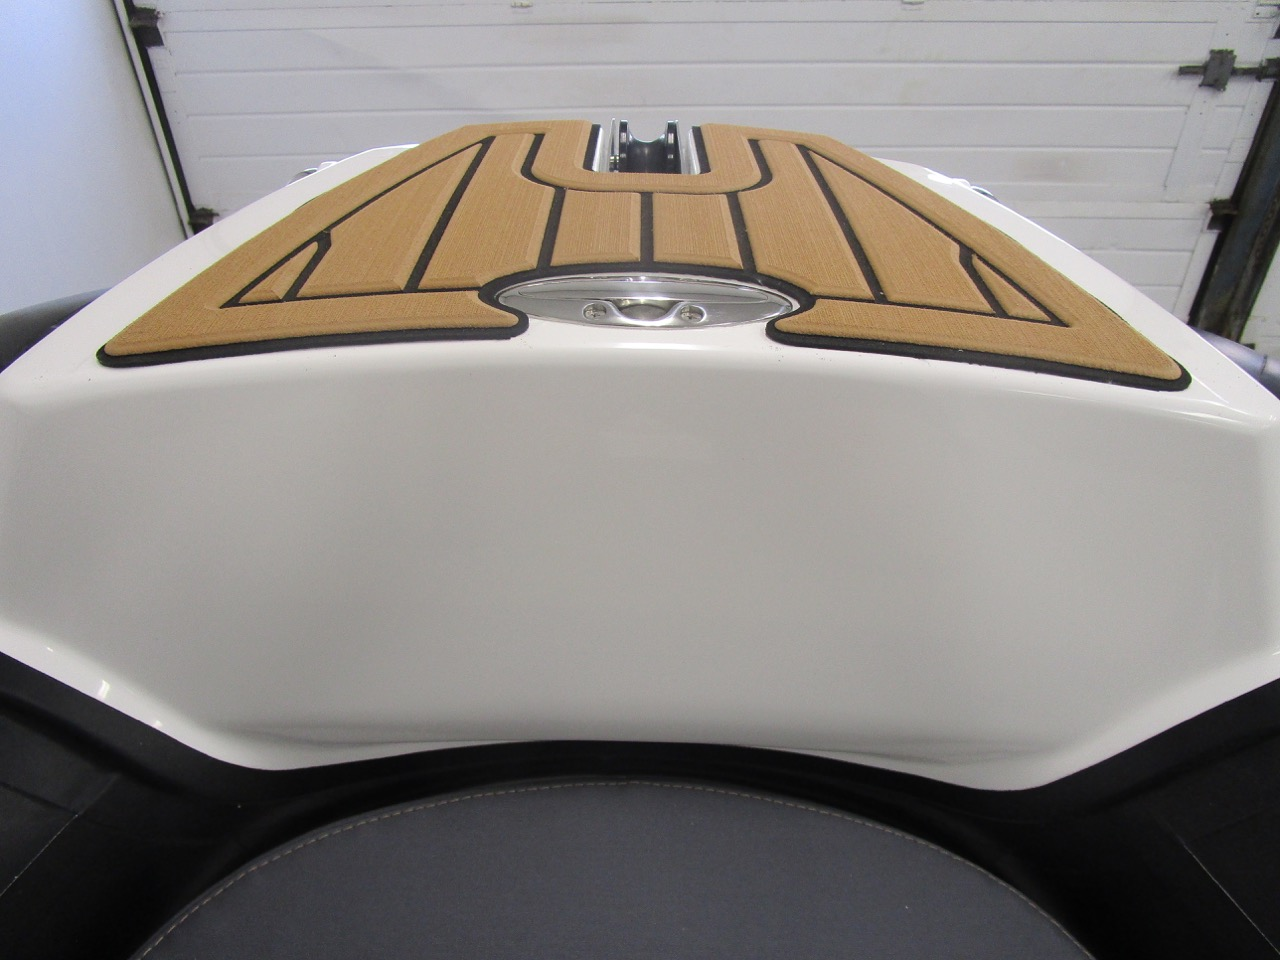 GRAND Golden Line G580 RIB cleat down